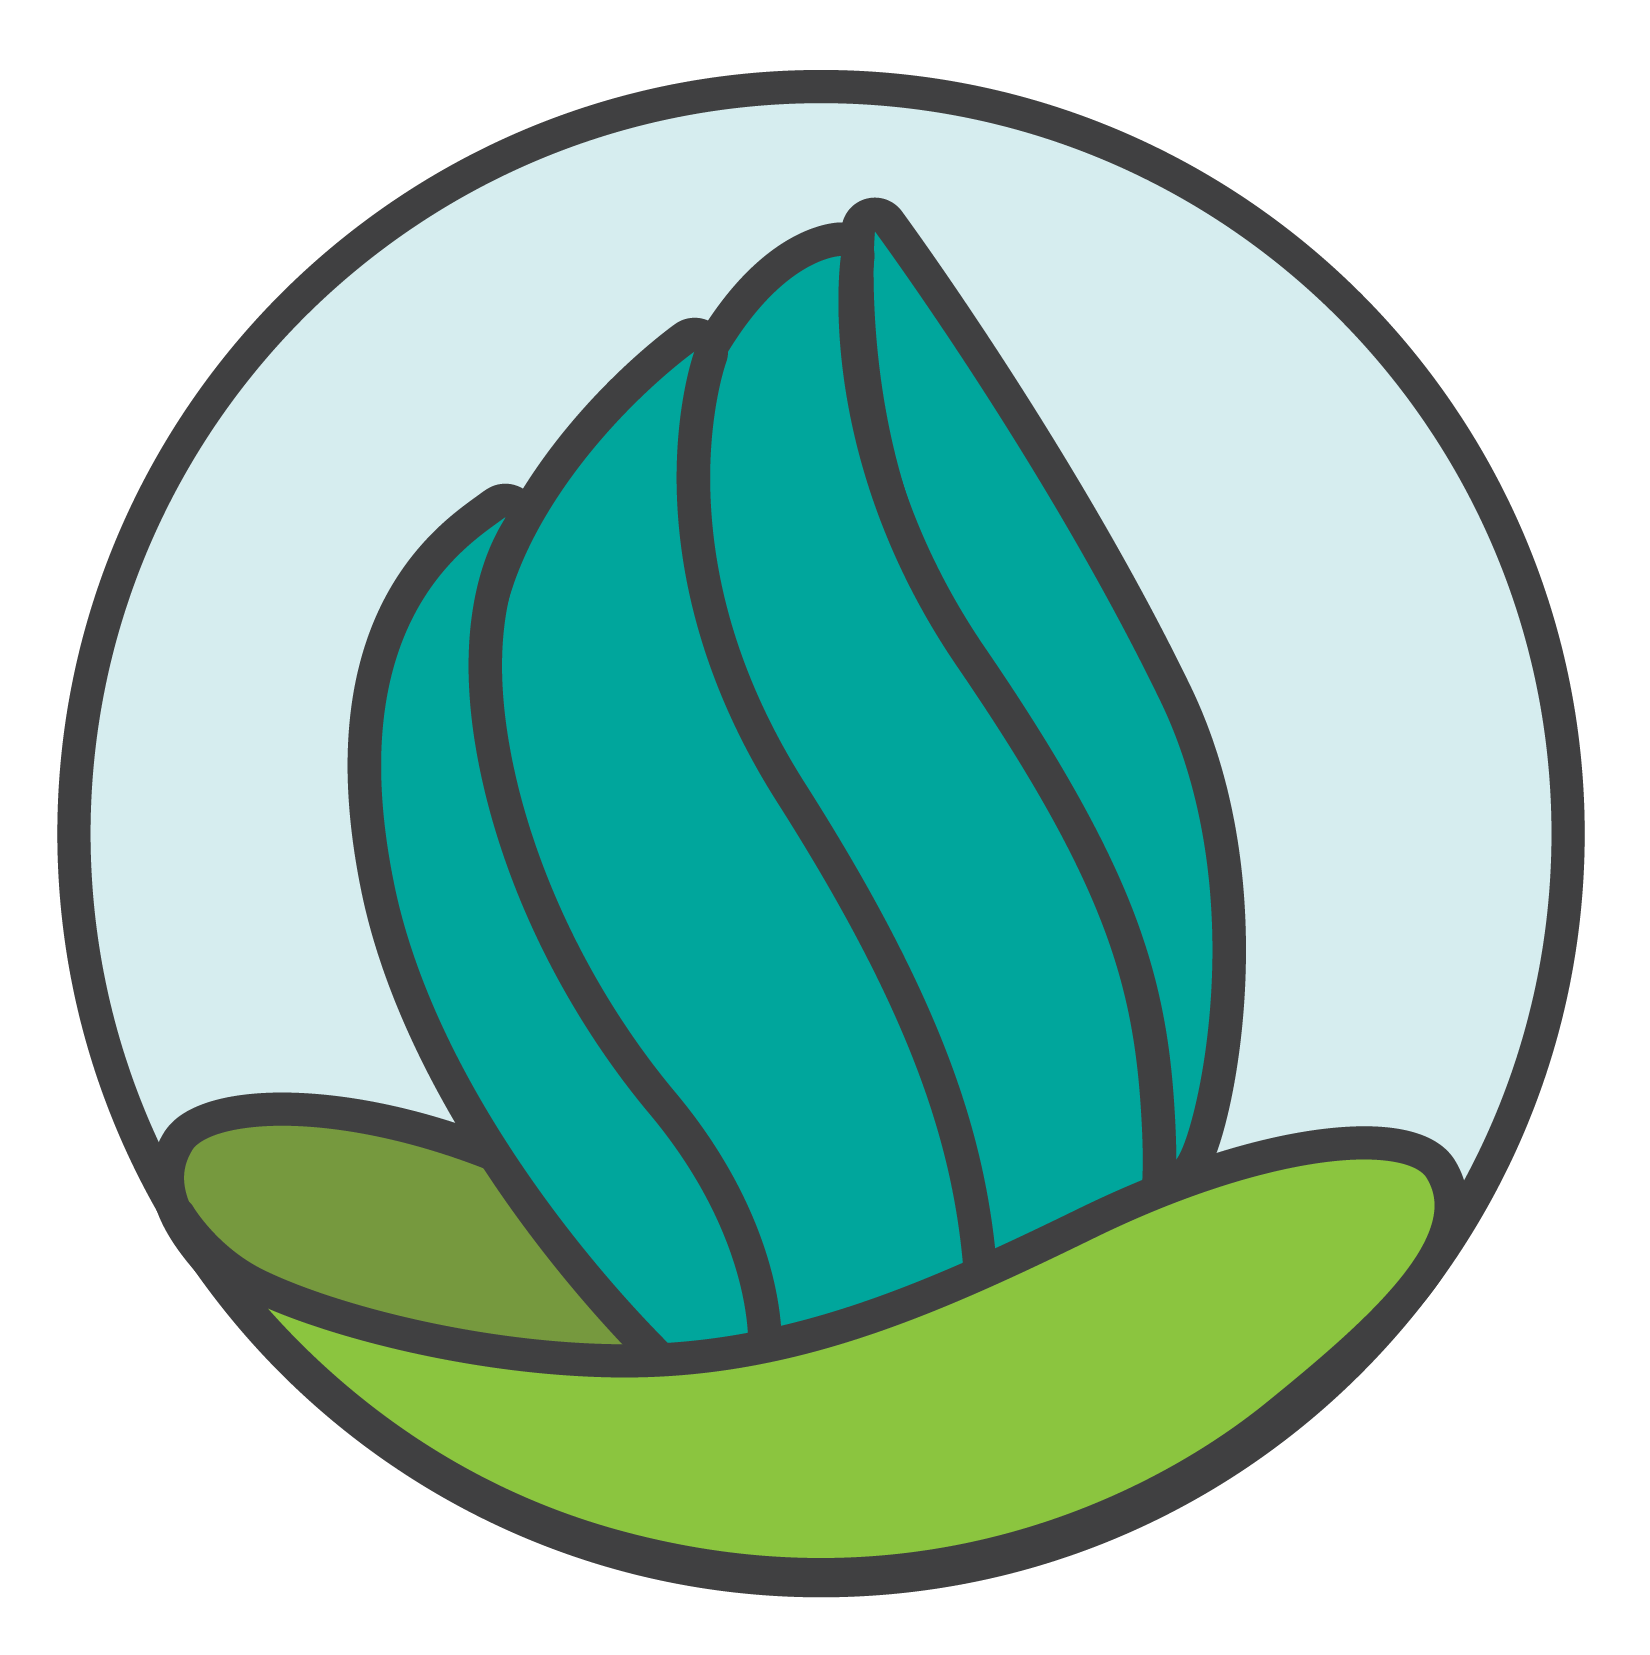 NDC logo. A teal stylized torch with green base.